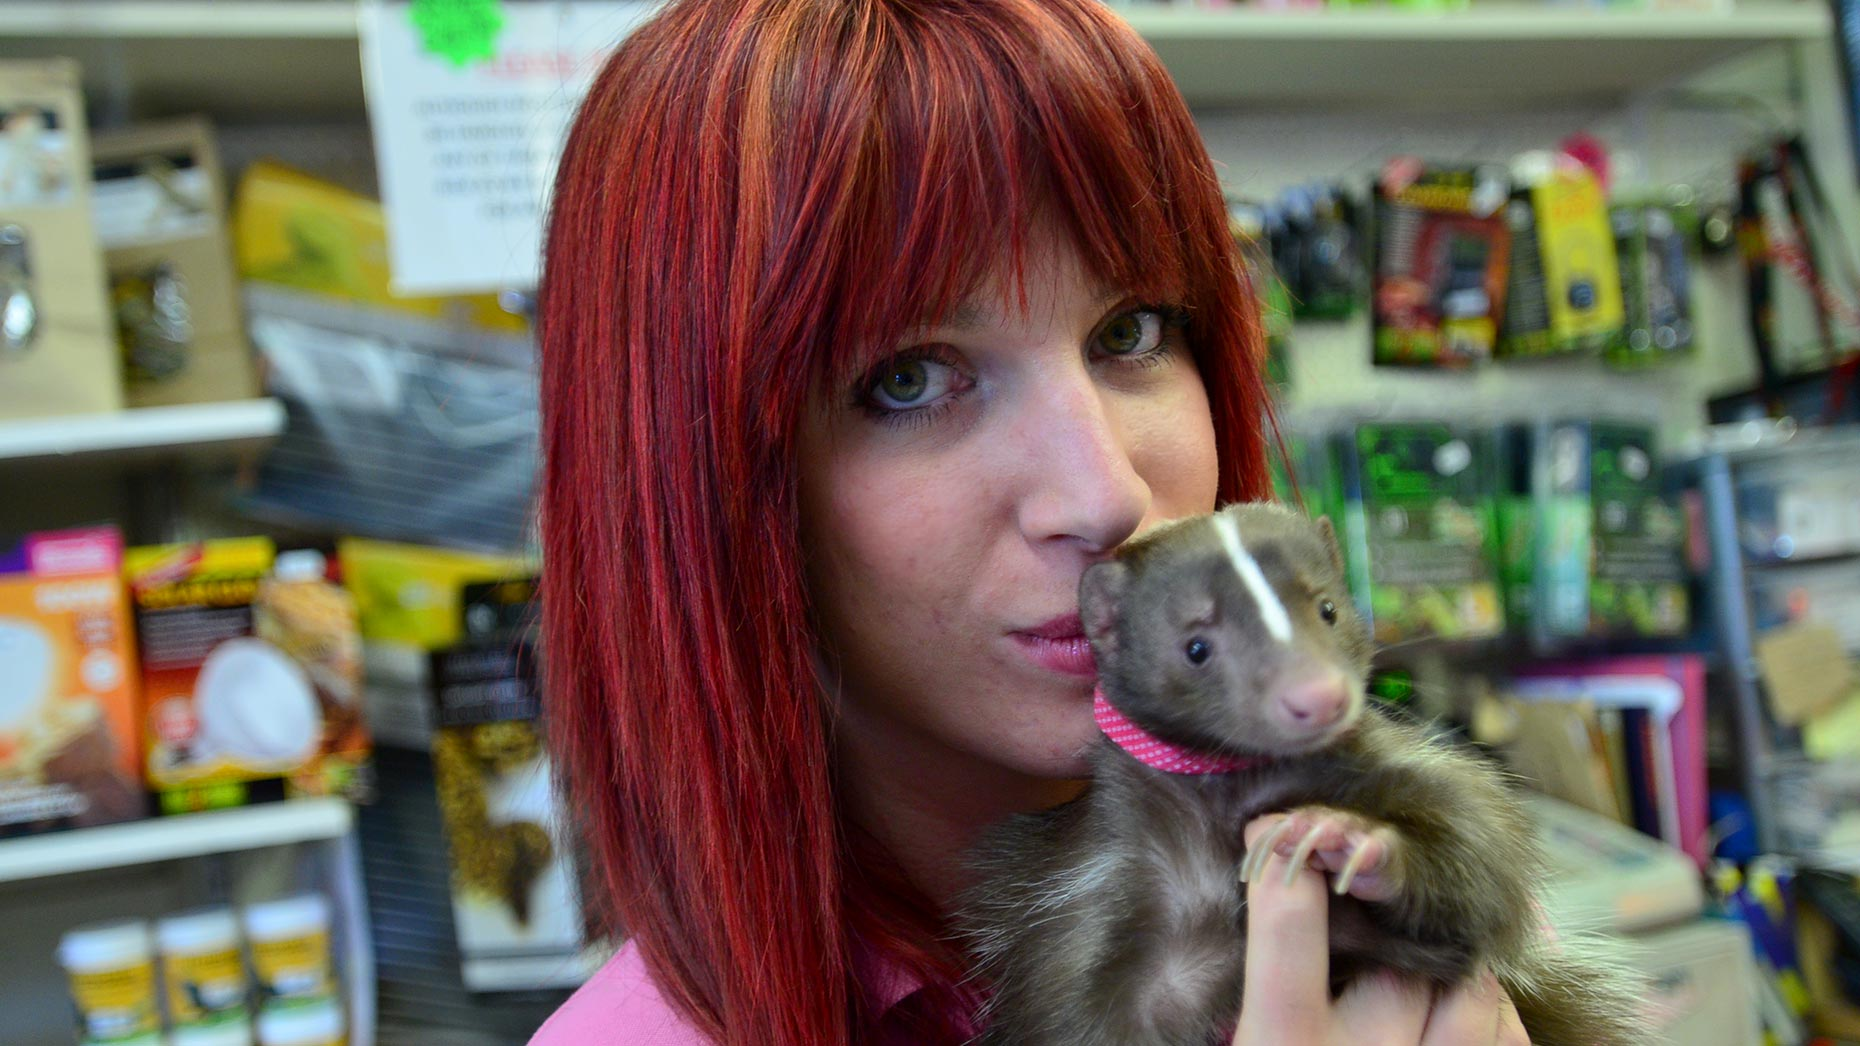 Shop owner Alyss Dickinson with Lily the skunk. Photo: Steve Smailes for The Lincolnite